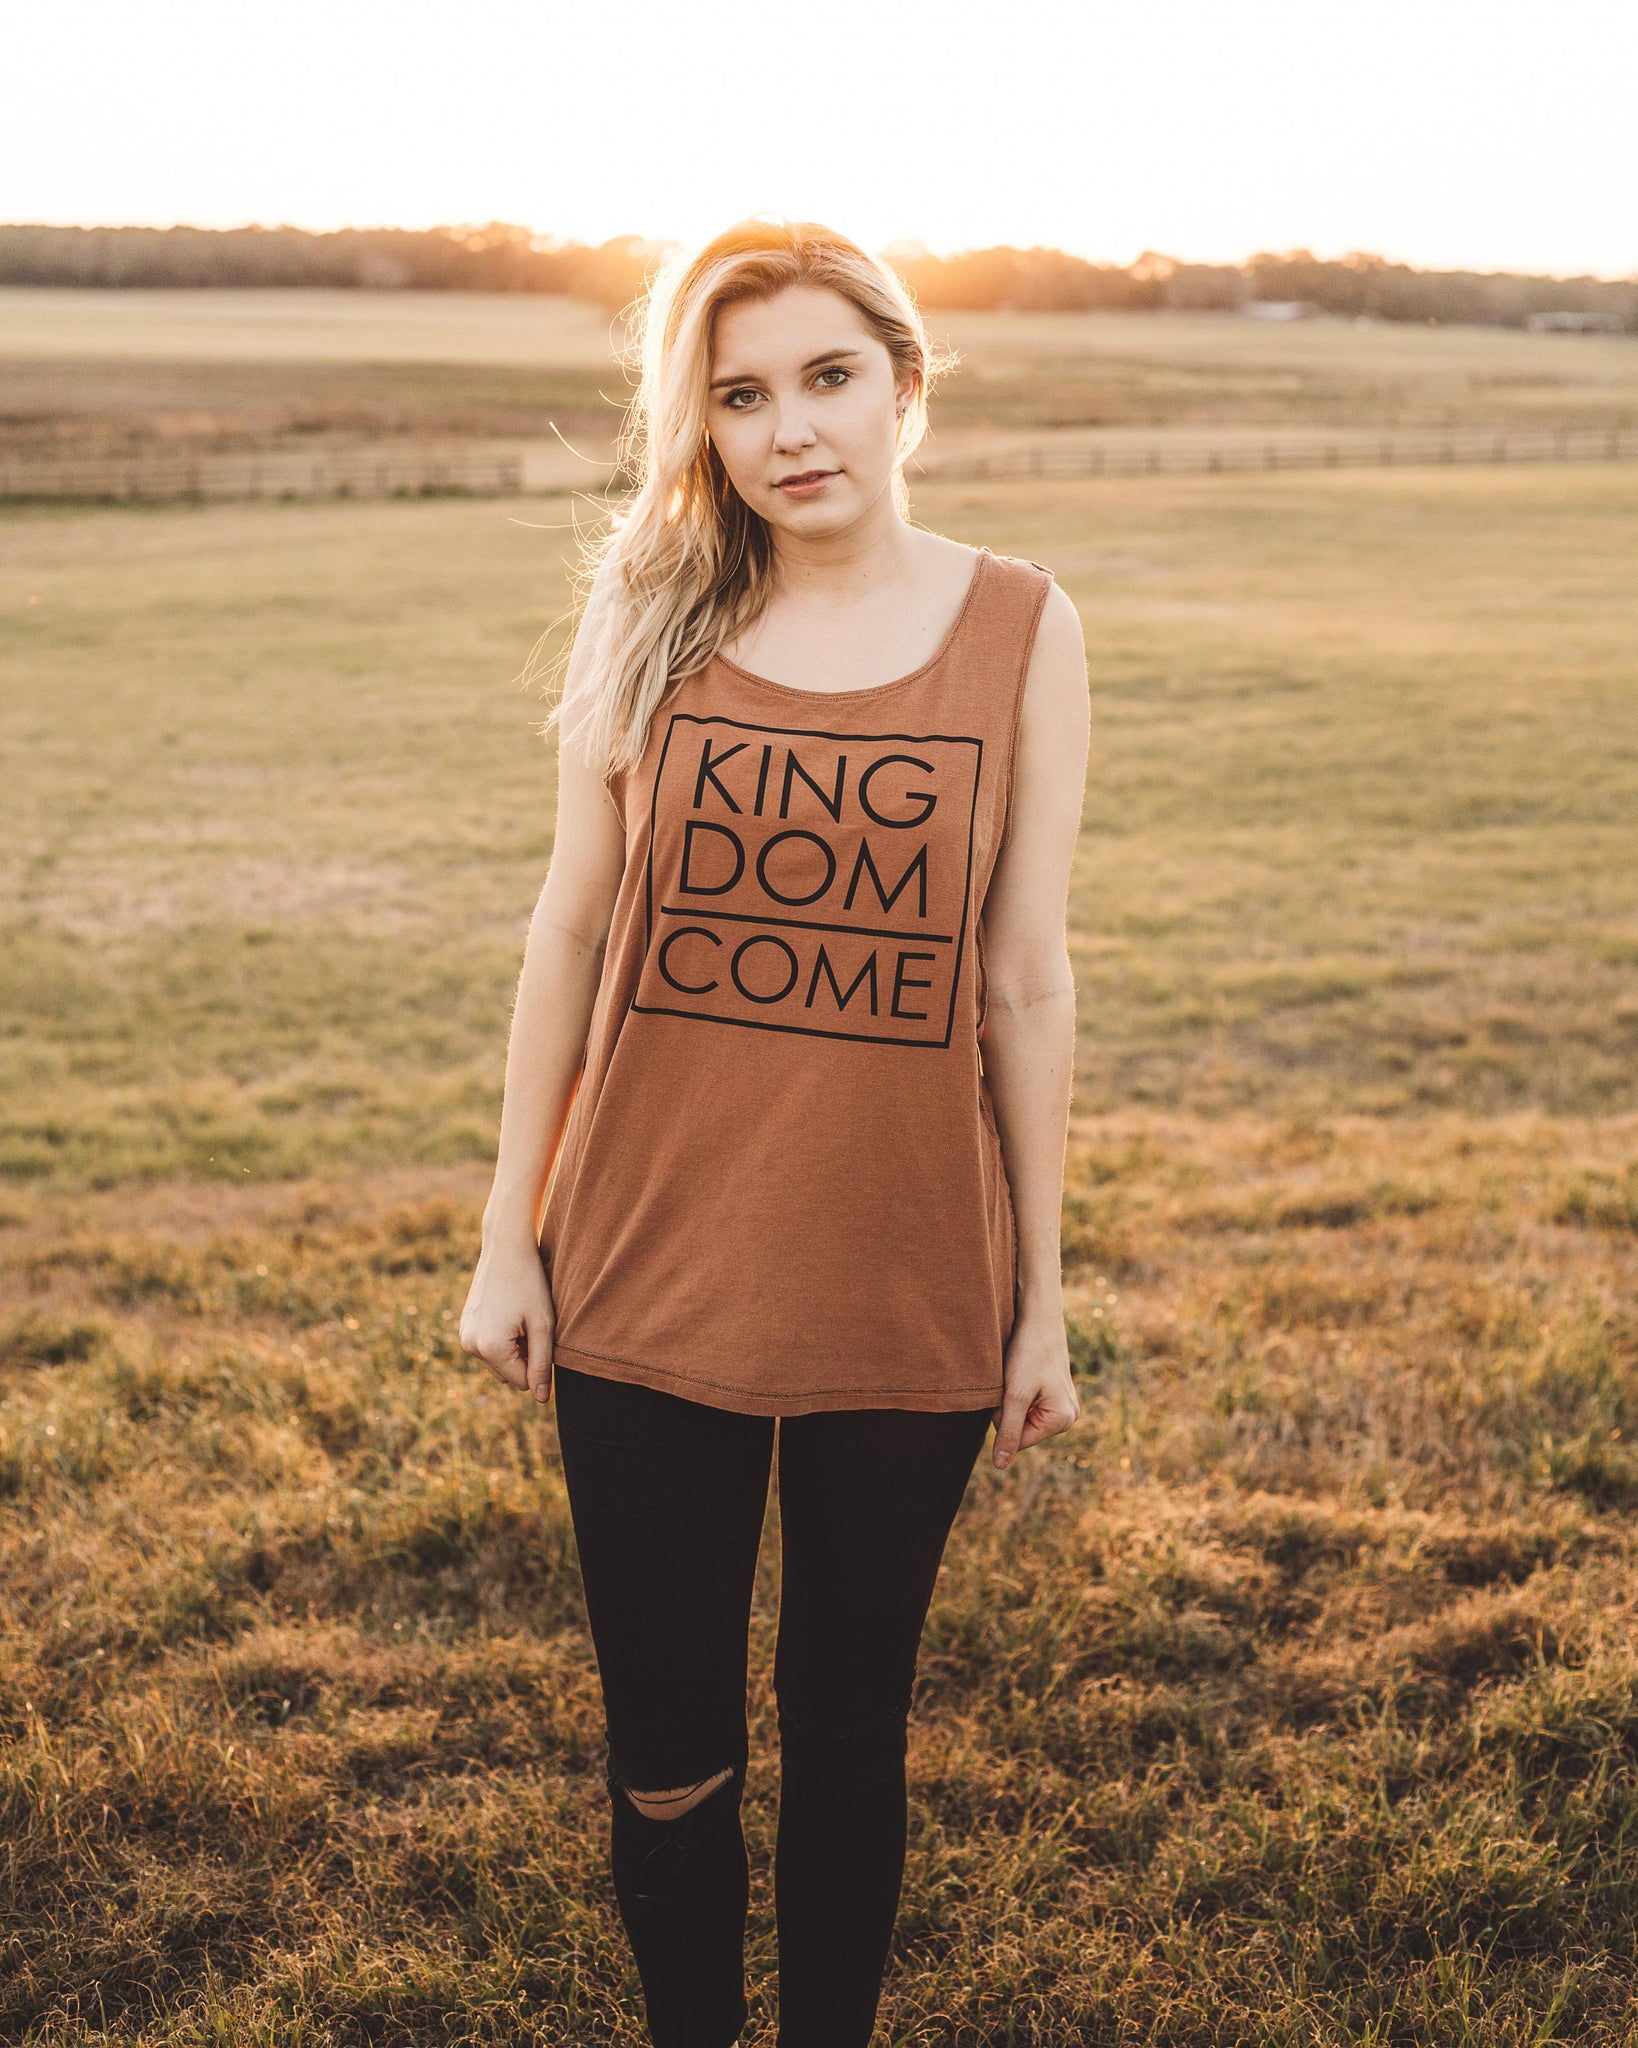 Unisex Christian Graphic Tee, Christian Shirts, Christian T Shirts, Christian gifts, Kingdom come shirt, Christian tanks, Thy Kingdom Come